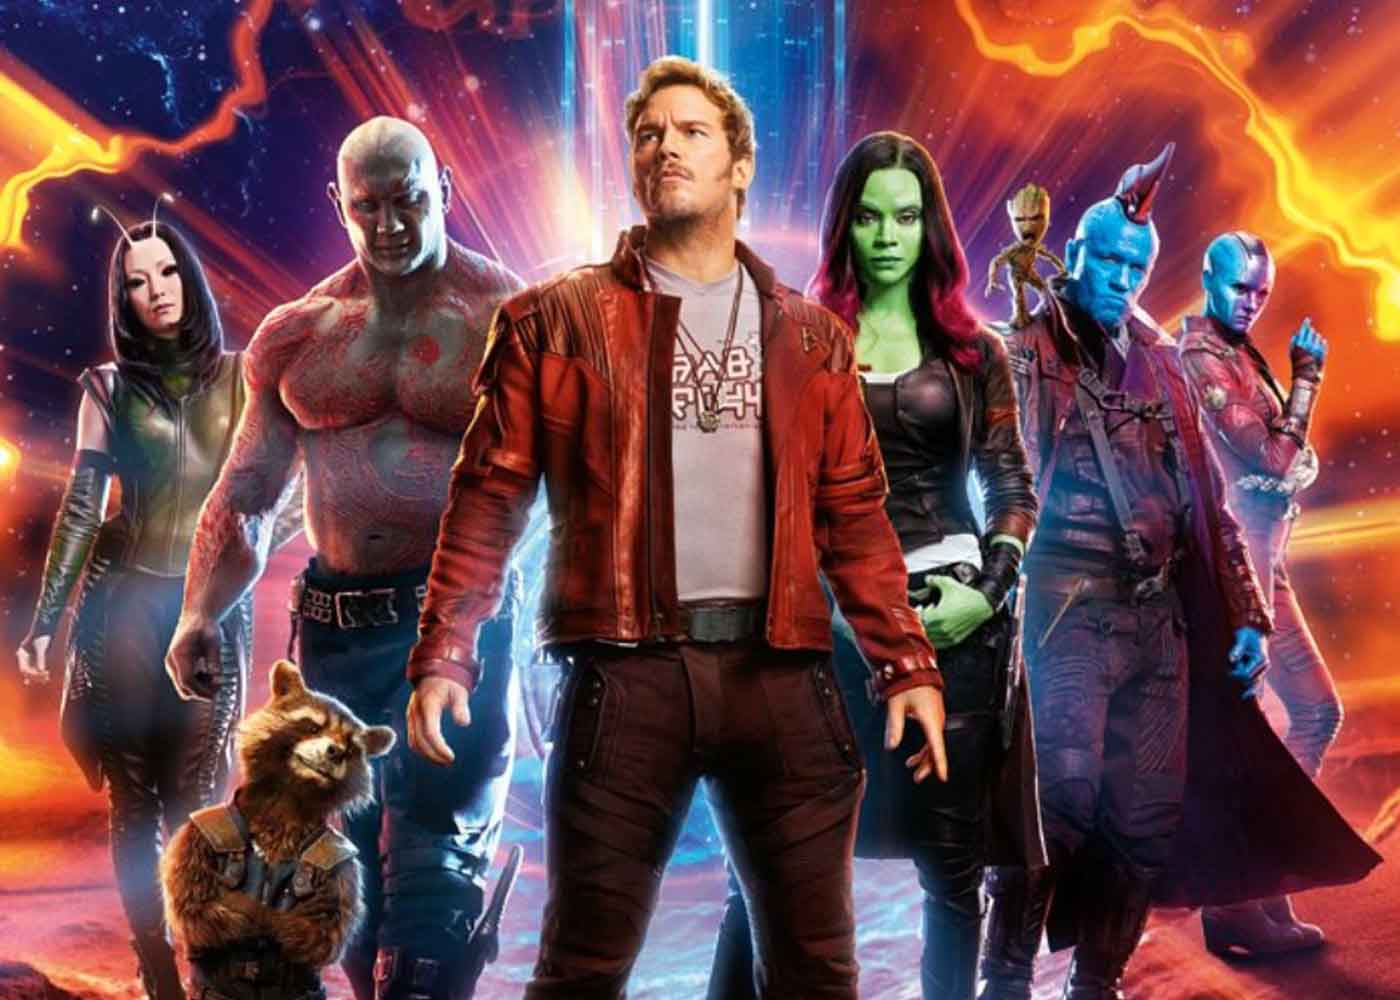 Guardians of the Galaxy Vol. 2 Surpasses the Original